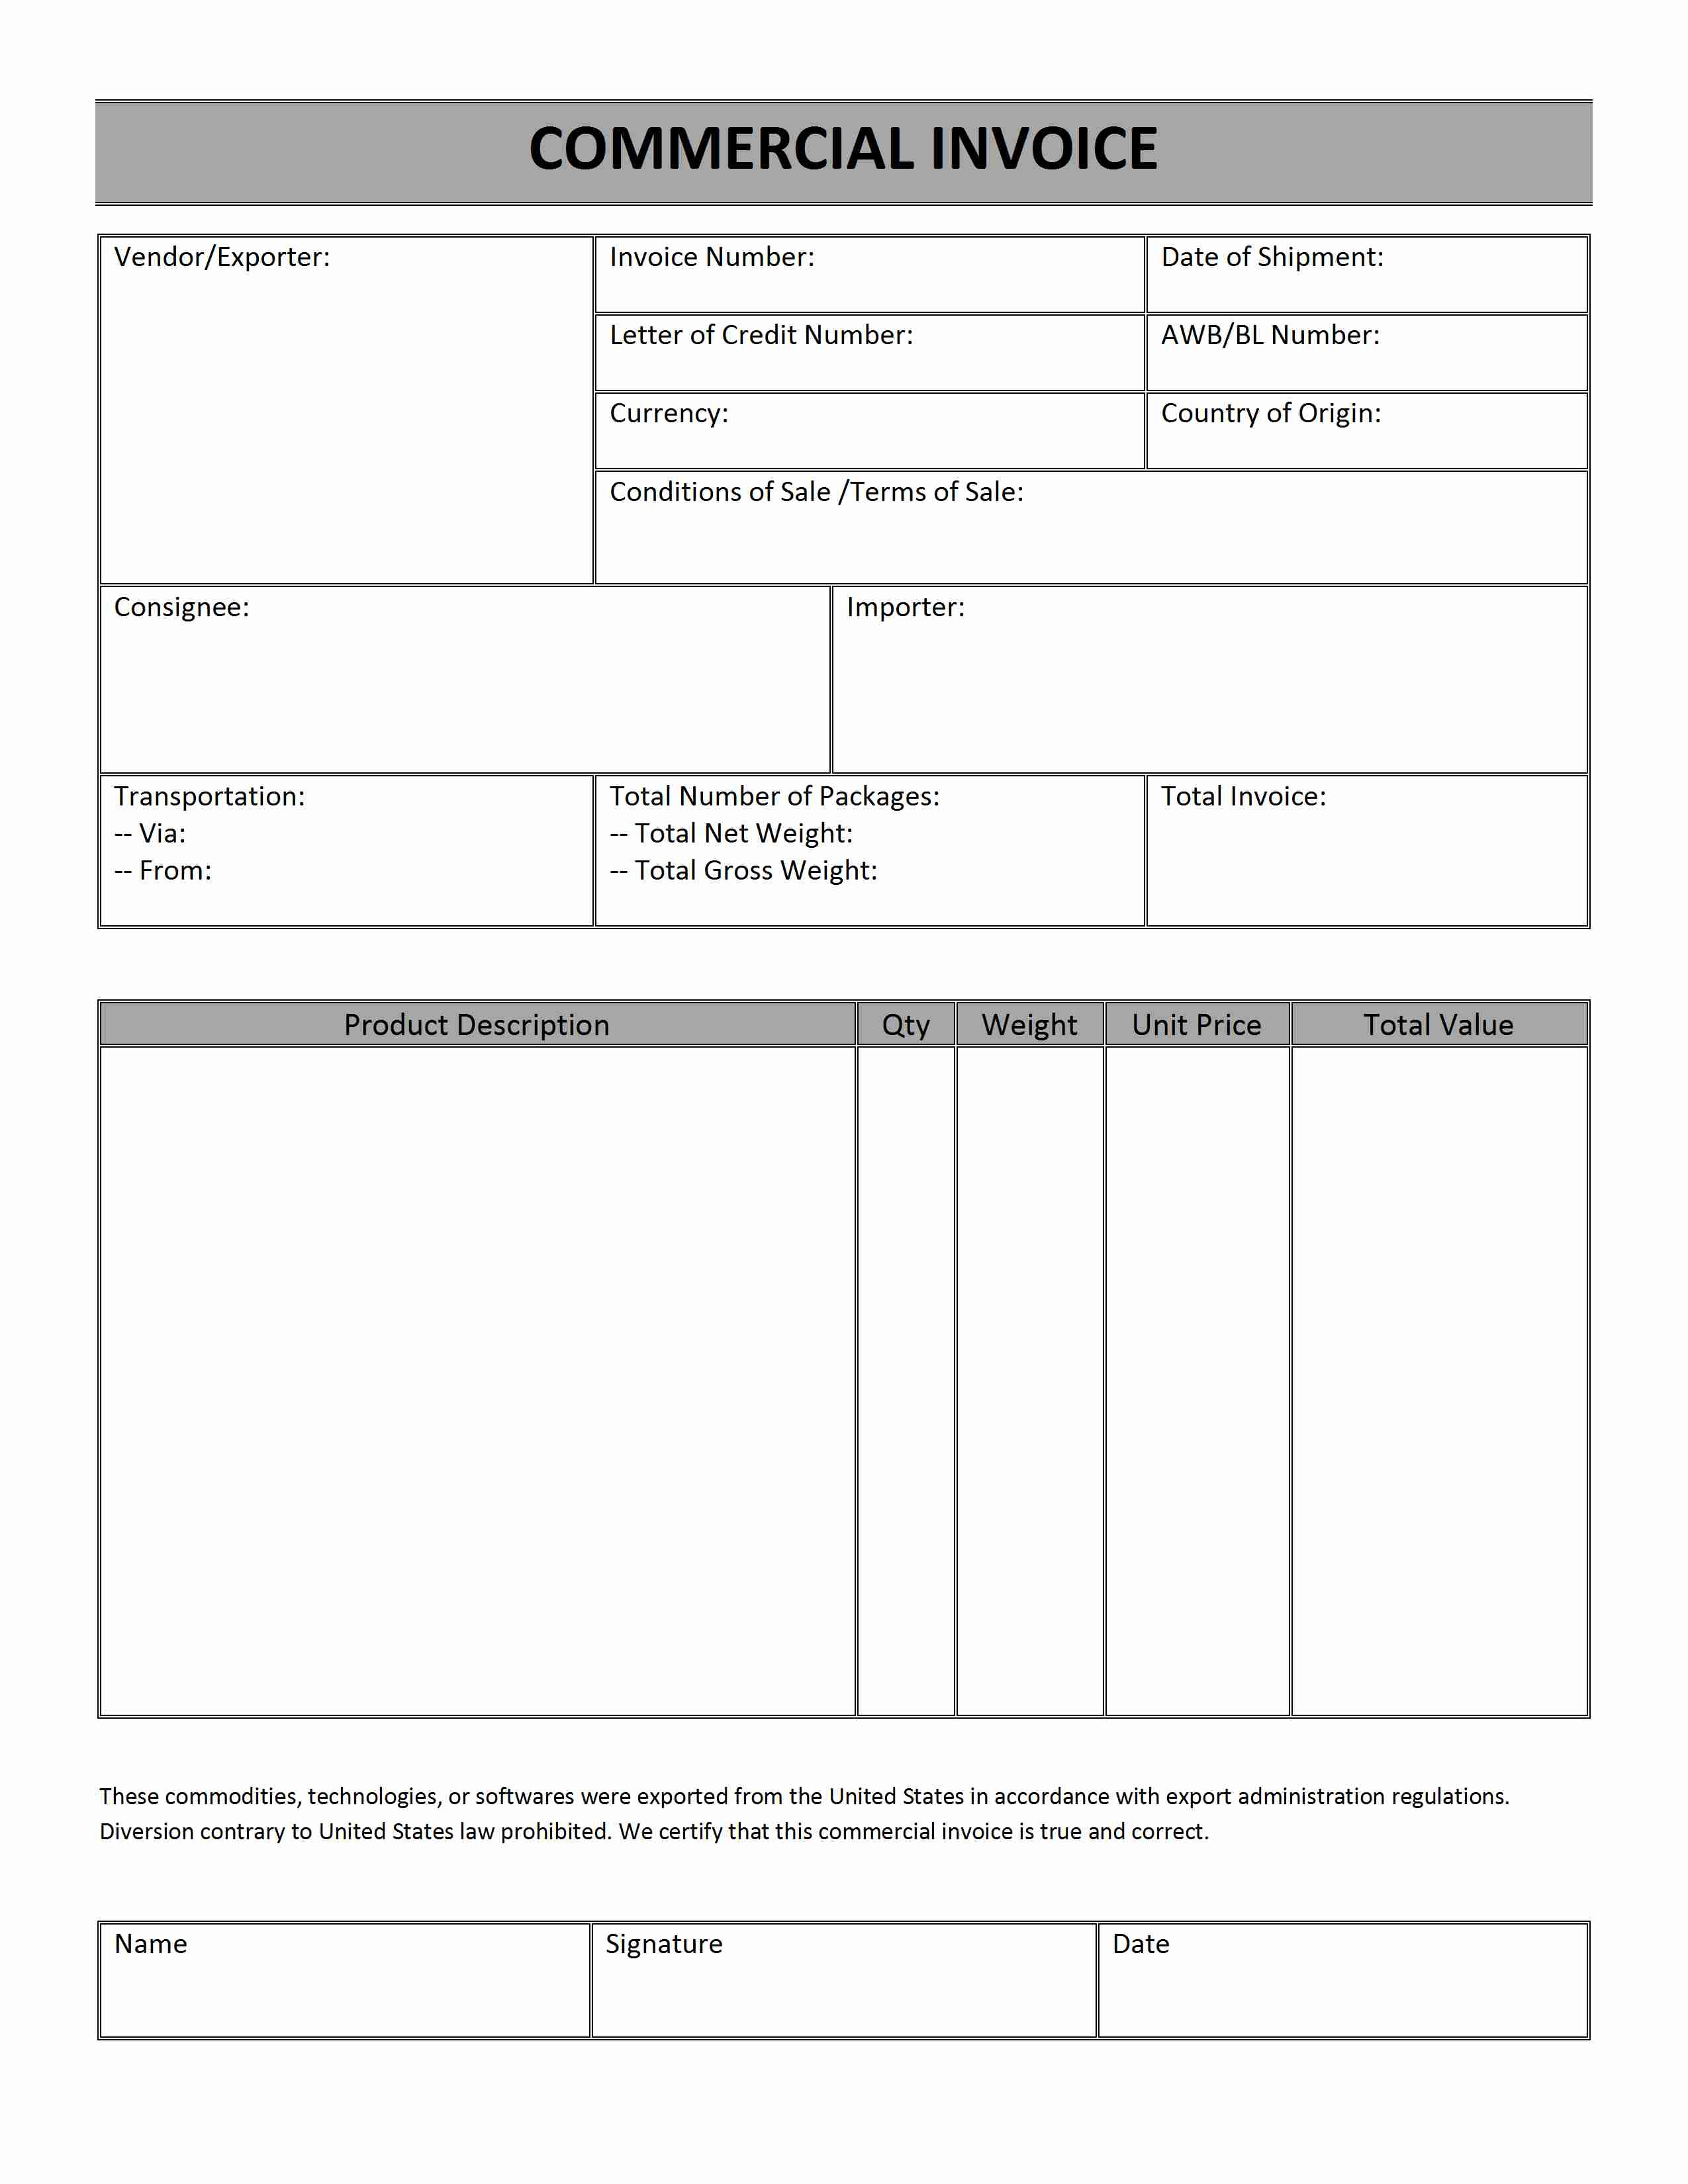 Pxworkoutfreeus  Personable Printable Sales Invoice Simple Invoice Form Free Invoice  With Goodlooking Printable Receipt Free  Free Printable Raffle Tickets  Receipt   Printable With Awesome Wal Mart Receipt Also Read Receipt In Yahoo Mail In Addition Home Depot Receipt Number And Component Hand Receipt As Well As Receipt Ledger Additionally Warehouse Receipt Form From Happytomco With Pxworkoutfreeus  Goodlooking Printable Sales Invoice Simple Invoice Form Free Invoice  With Awesome Printable Receipt Free  Free Printable Raffle Tickets  Receipt   Printable And Personable Wal Mart Receipt Also Read Receipt In Yahoo Mail In Addition Home Depot Receipt Number From Happytomco